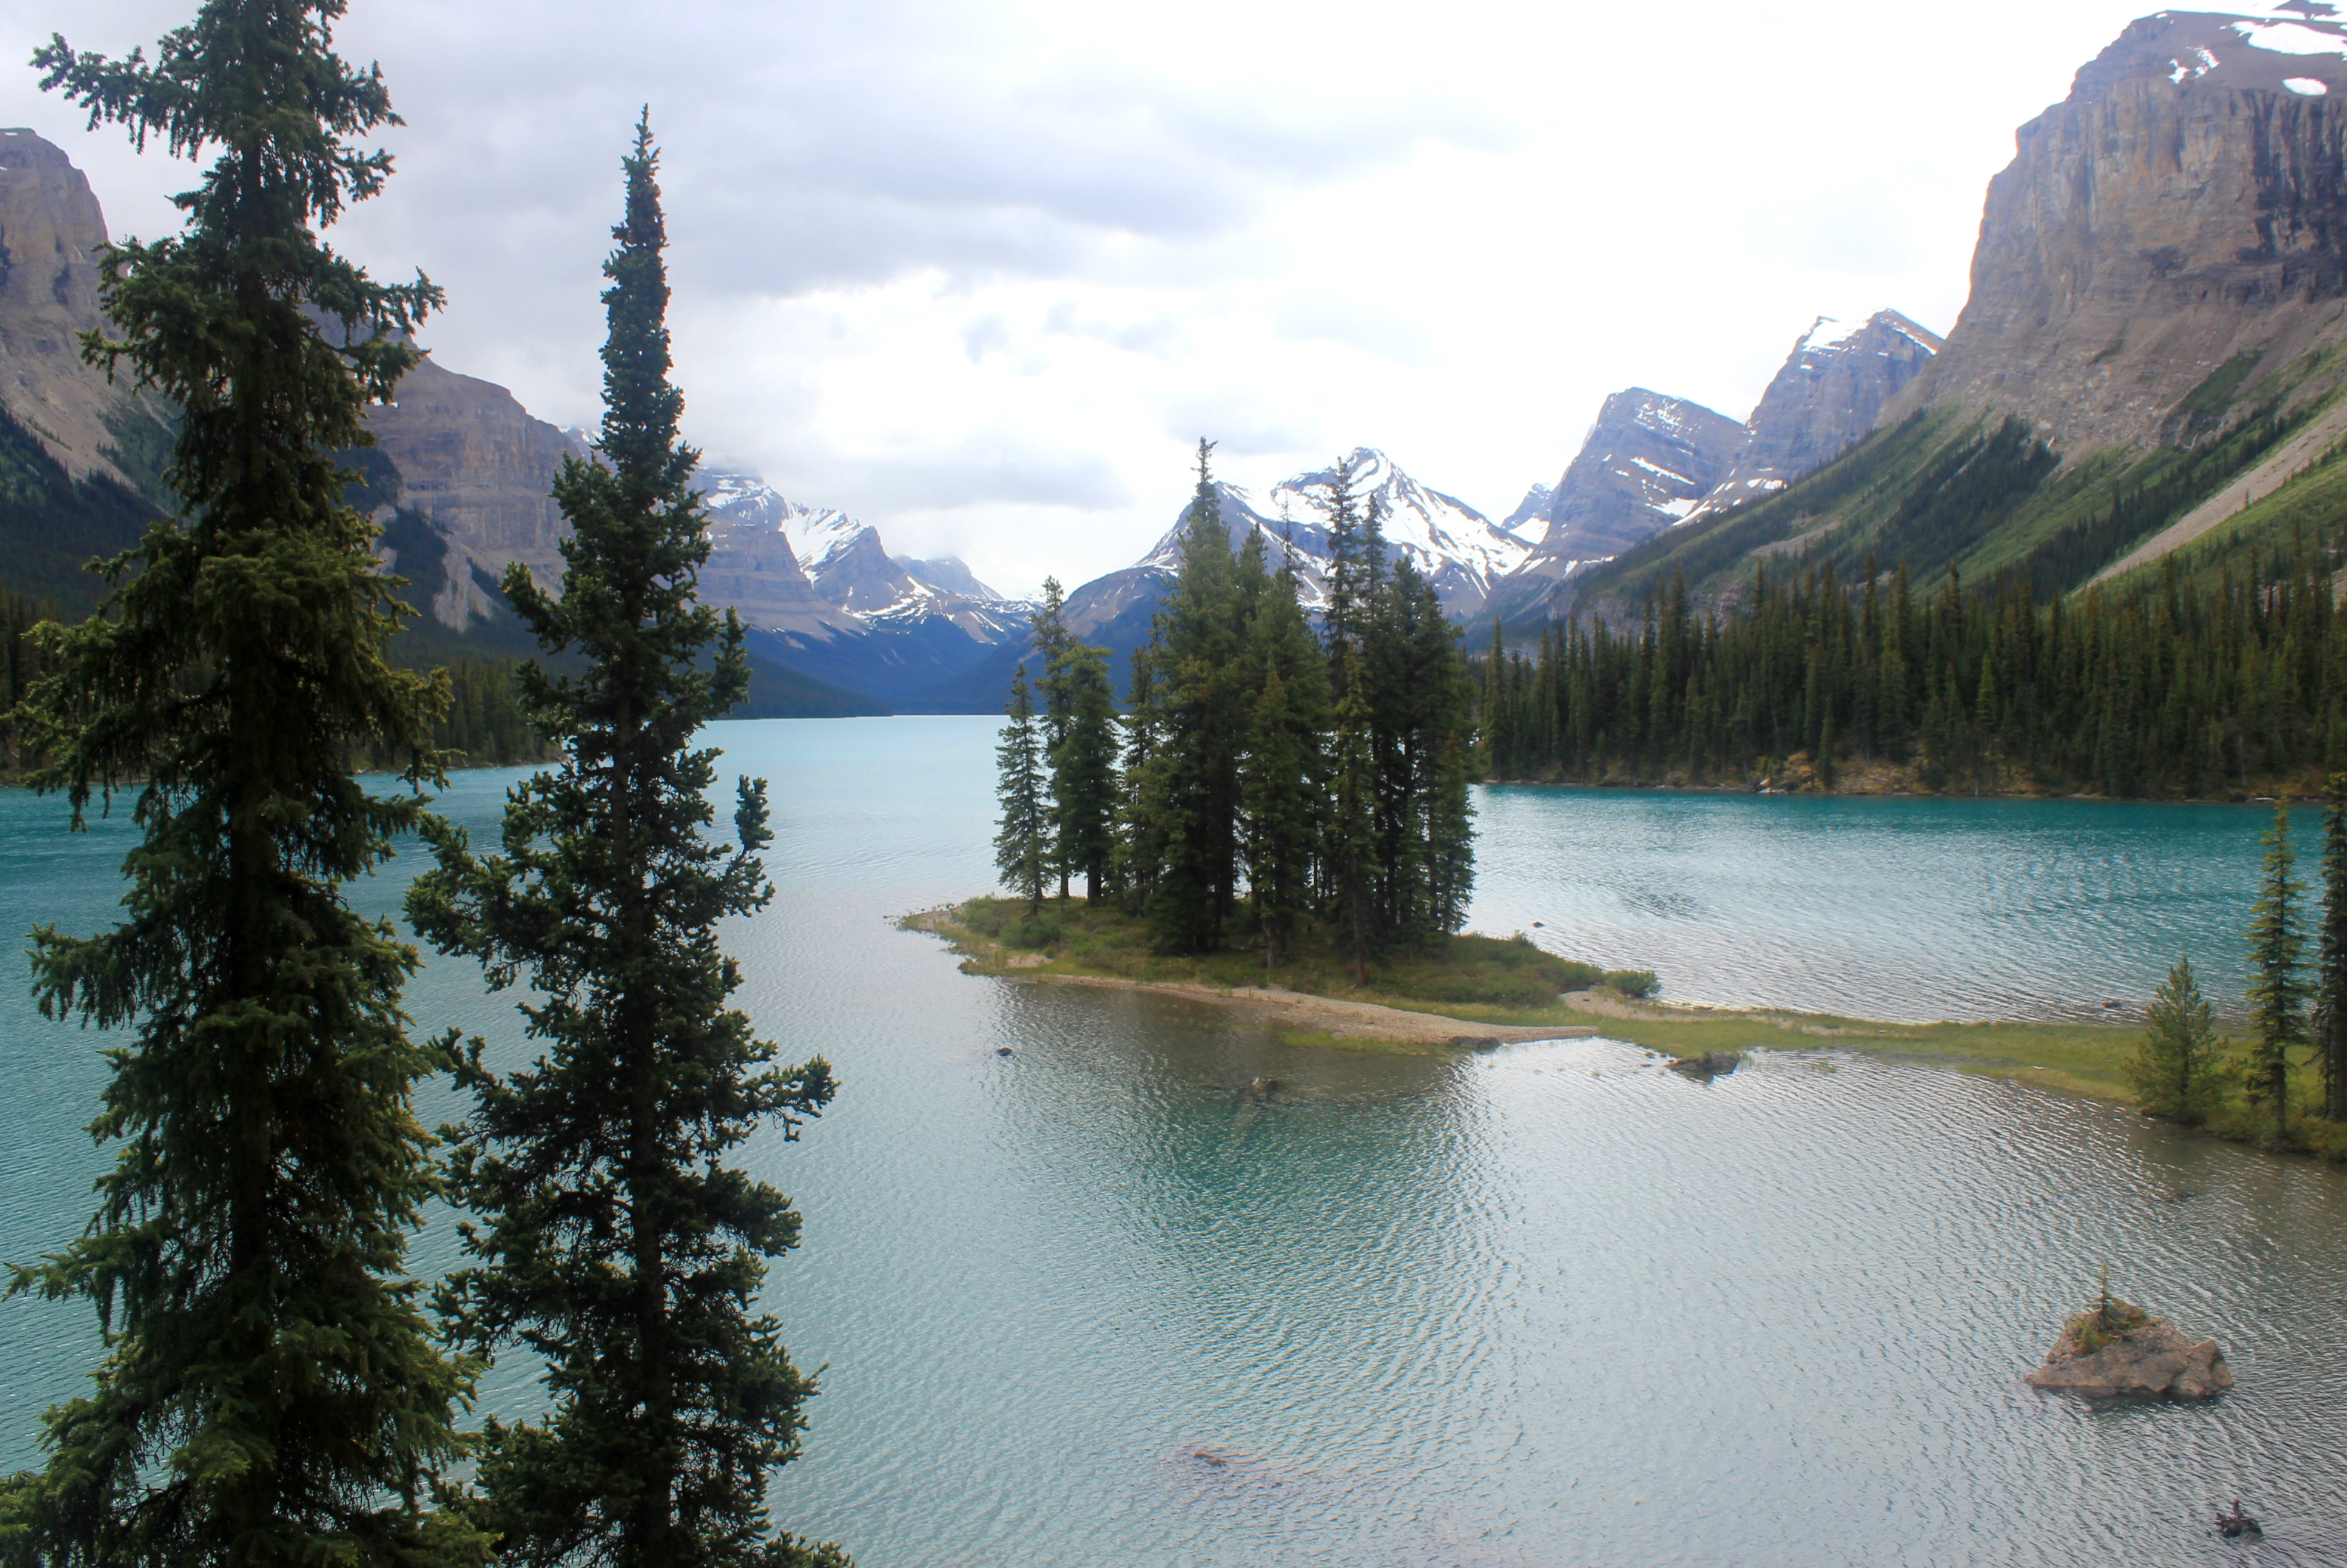 When in the Canadian Rockies, you MUST visit THIS place